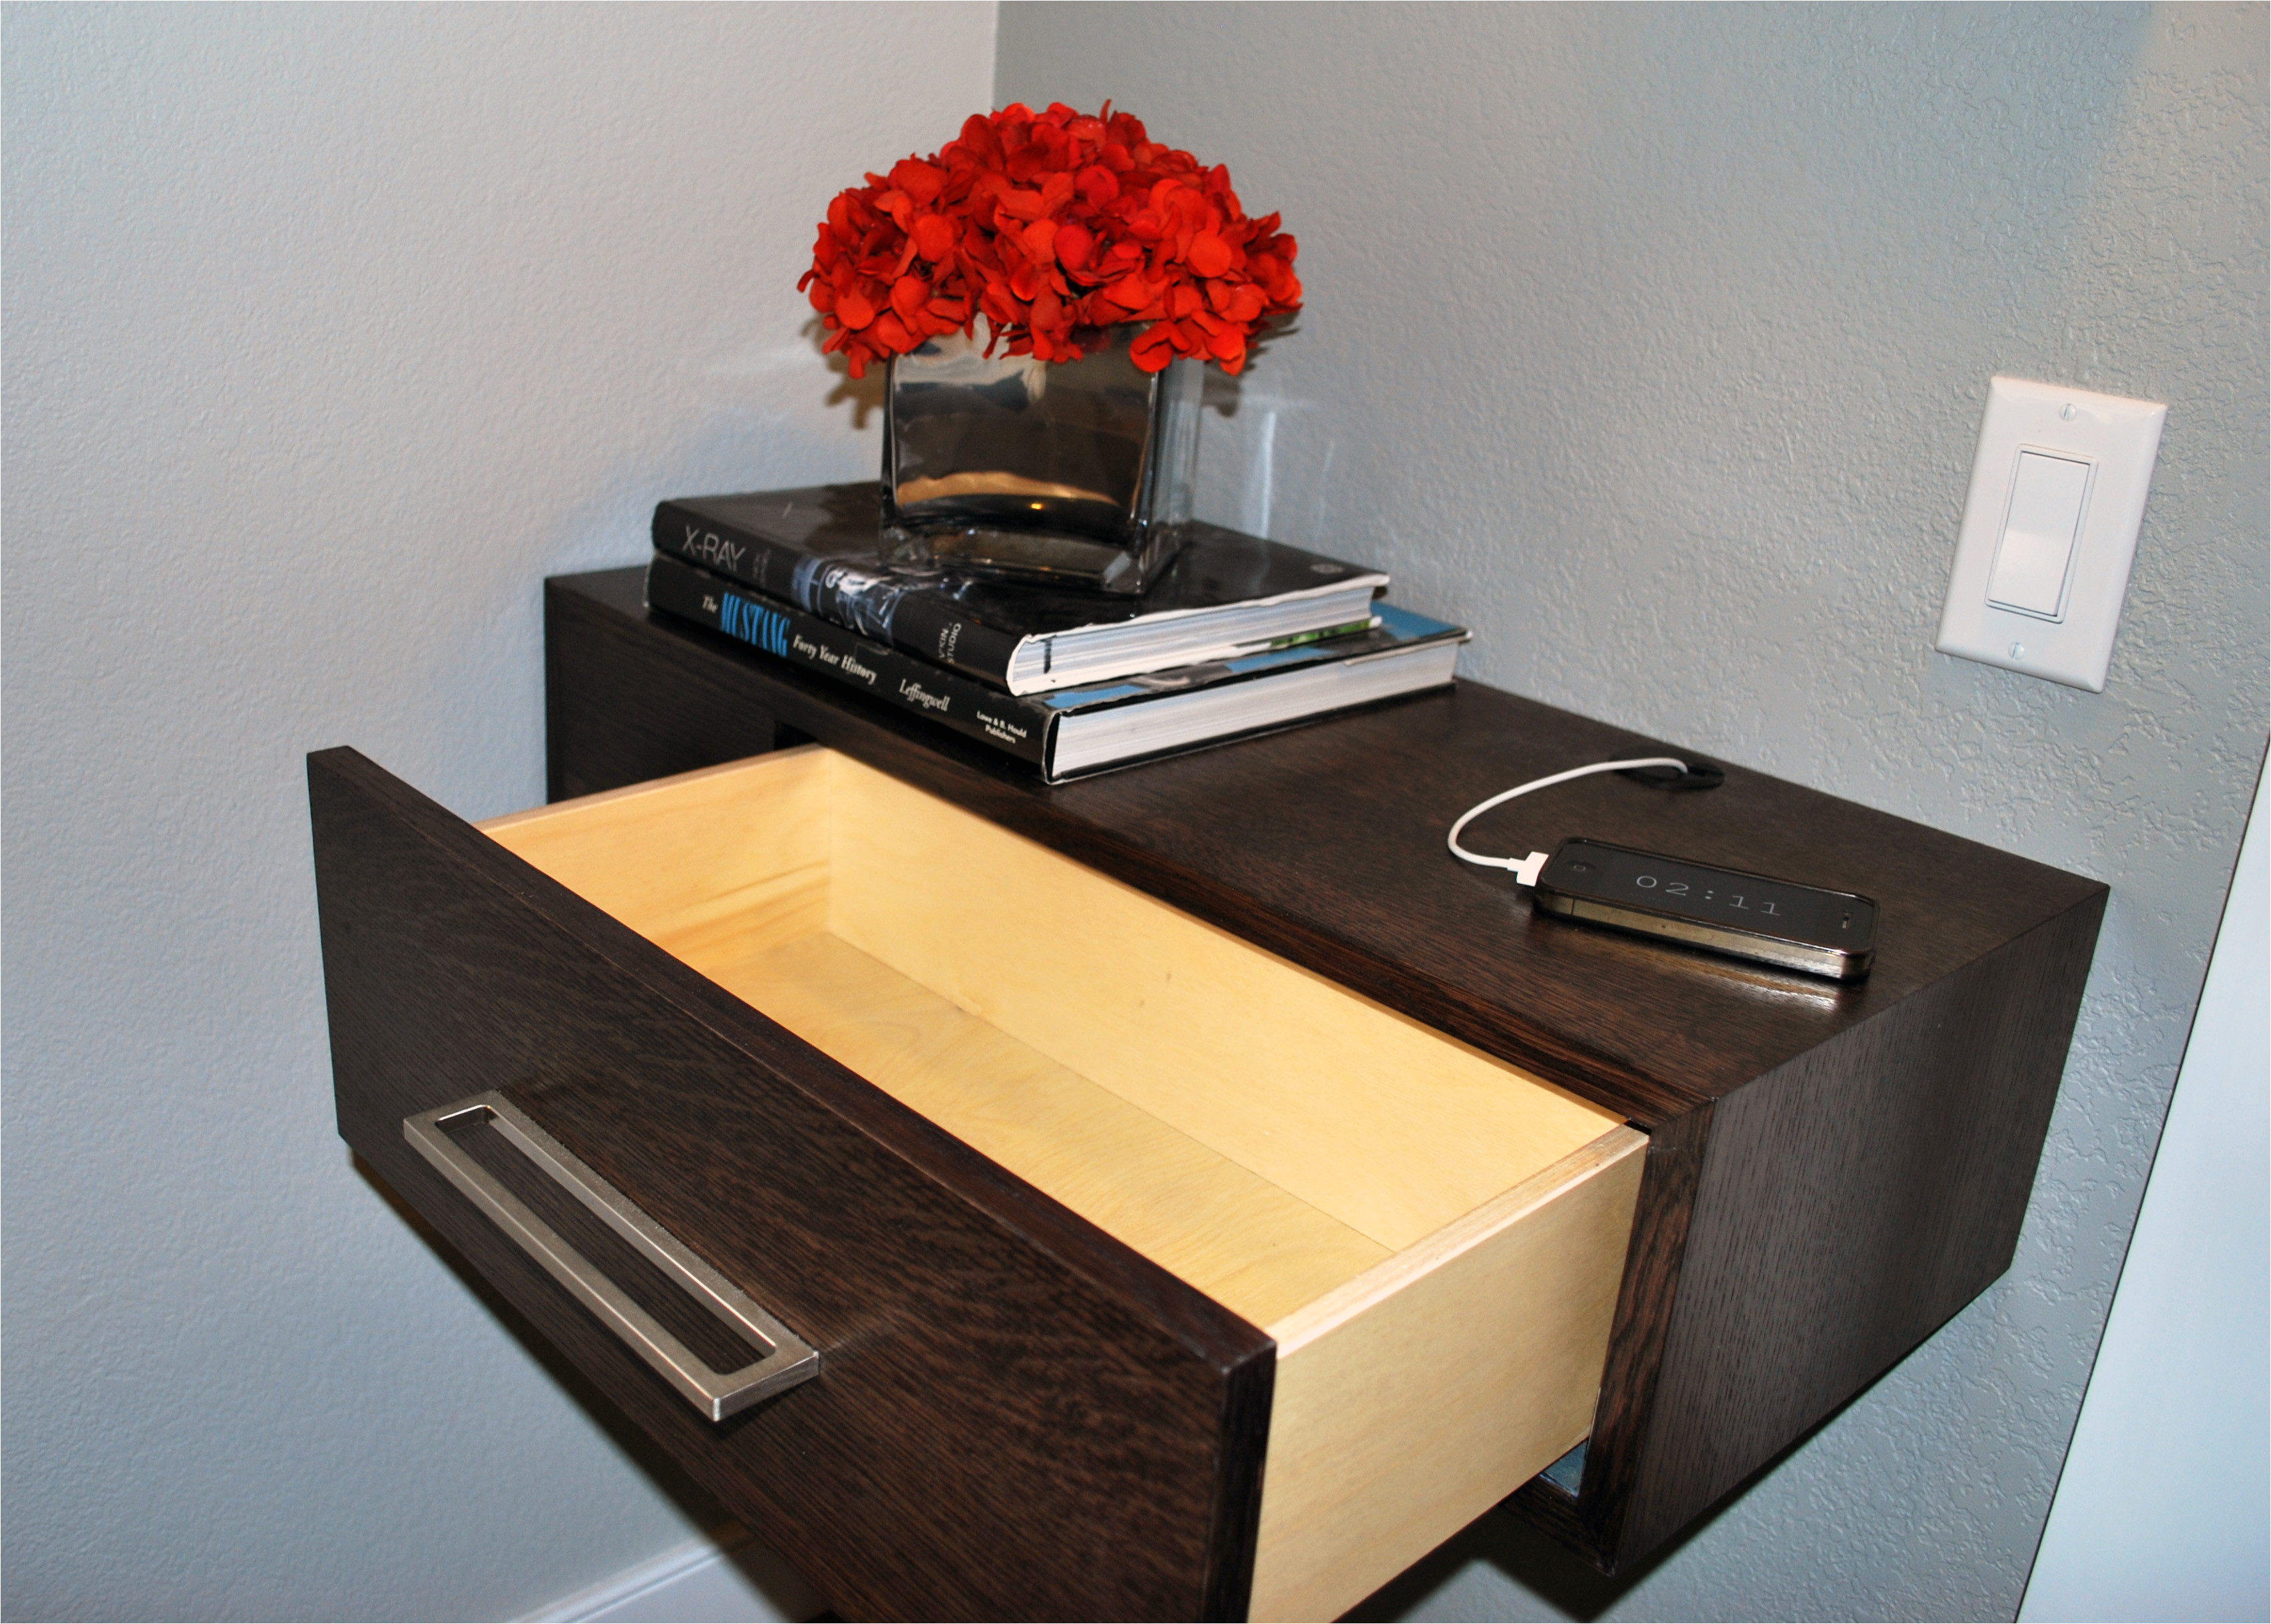 furniture inspiring design floating nightstand with drawer bring stained dark brown wooden desk light inside plus most awesome floating nightstand plans